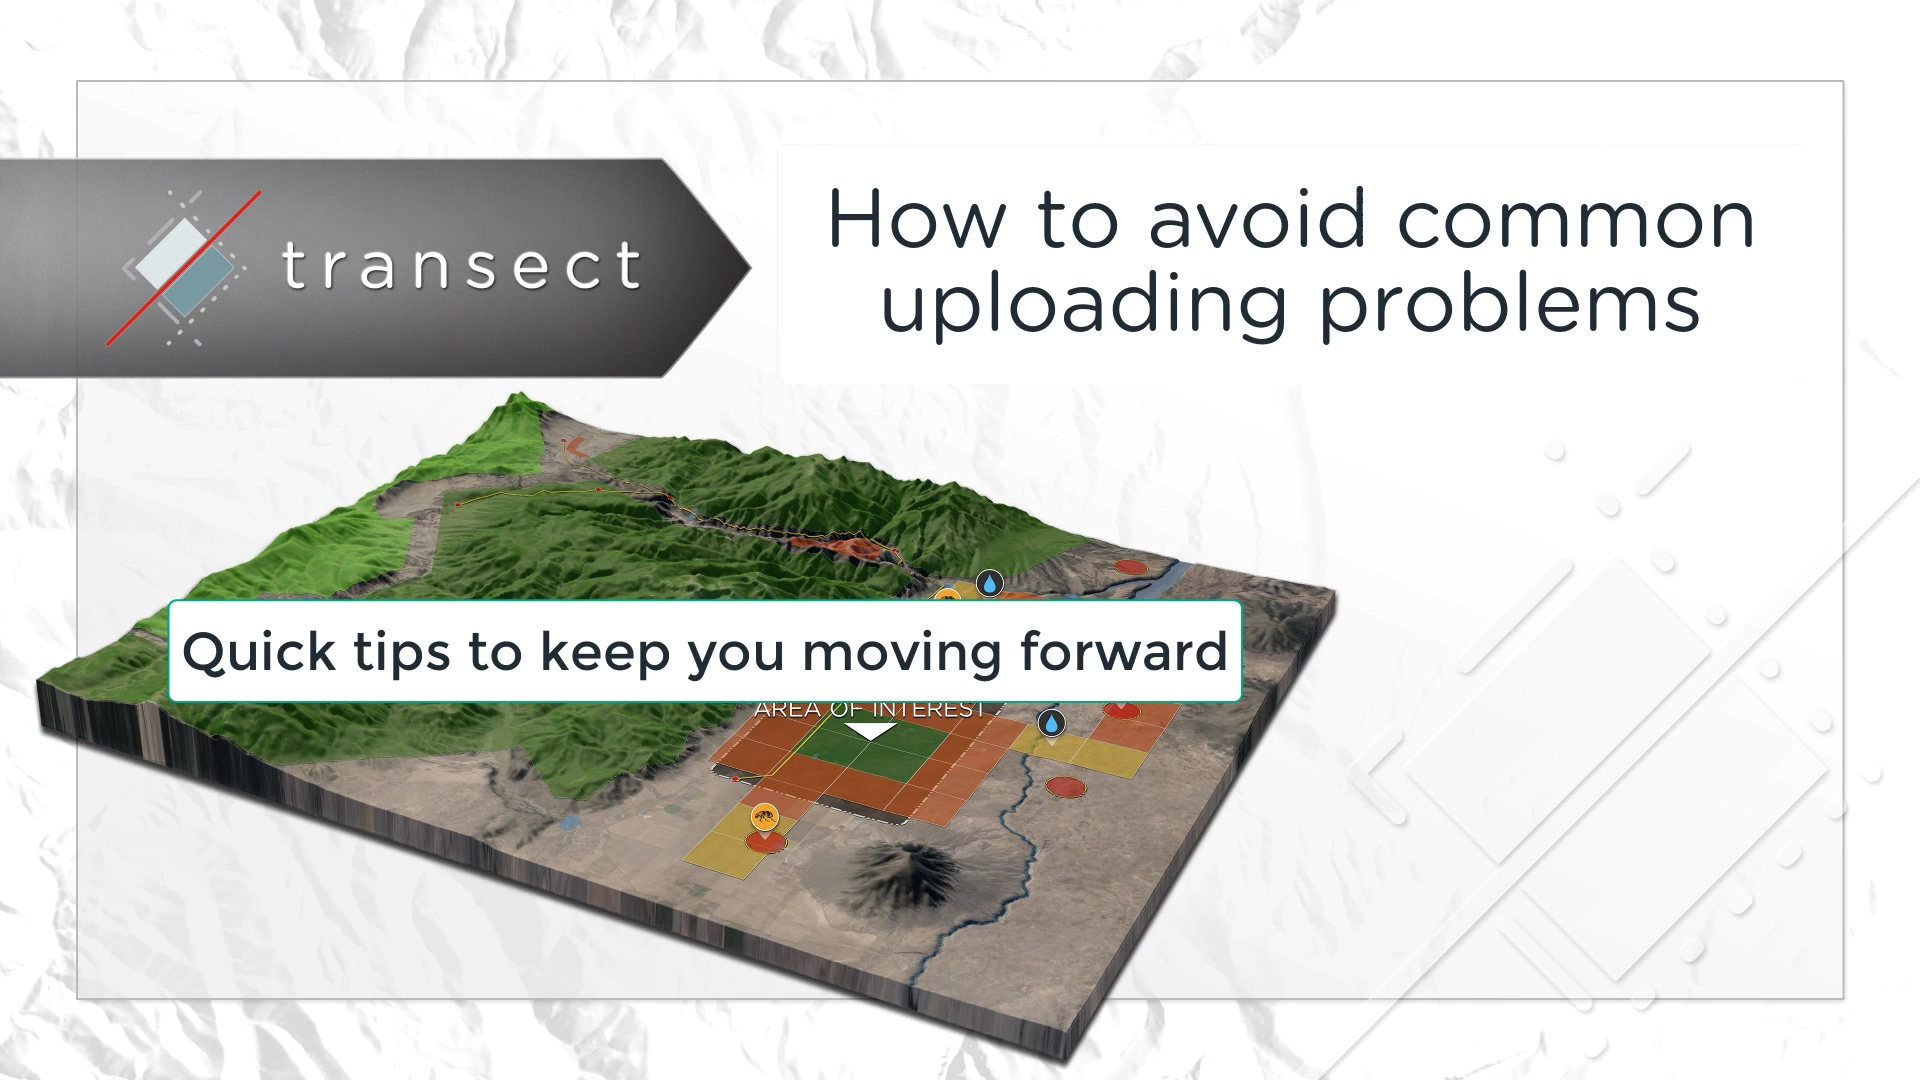 How to overcome common uploading problems